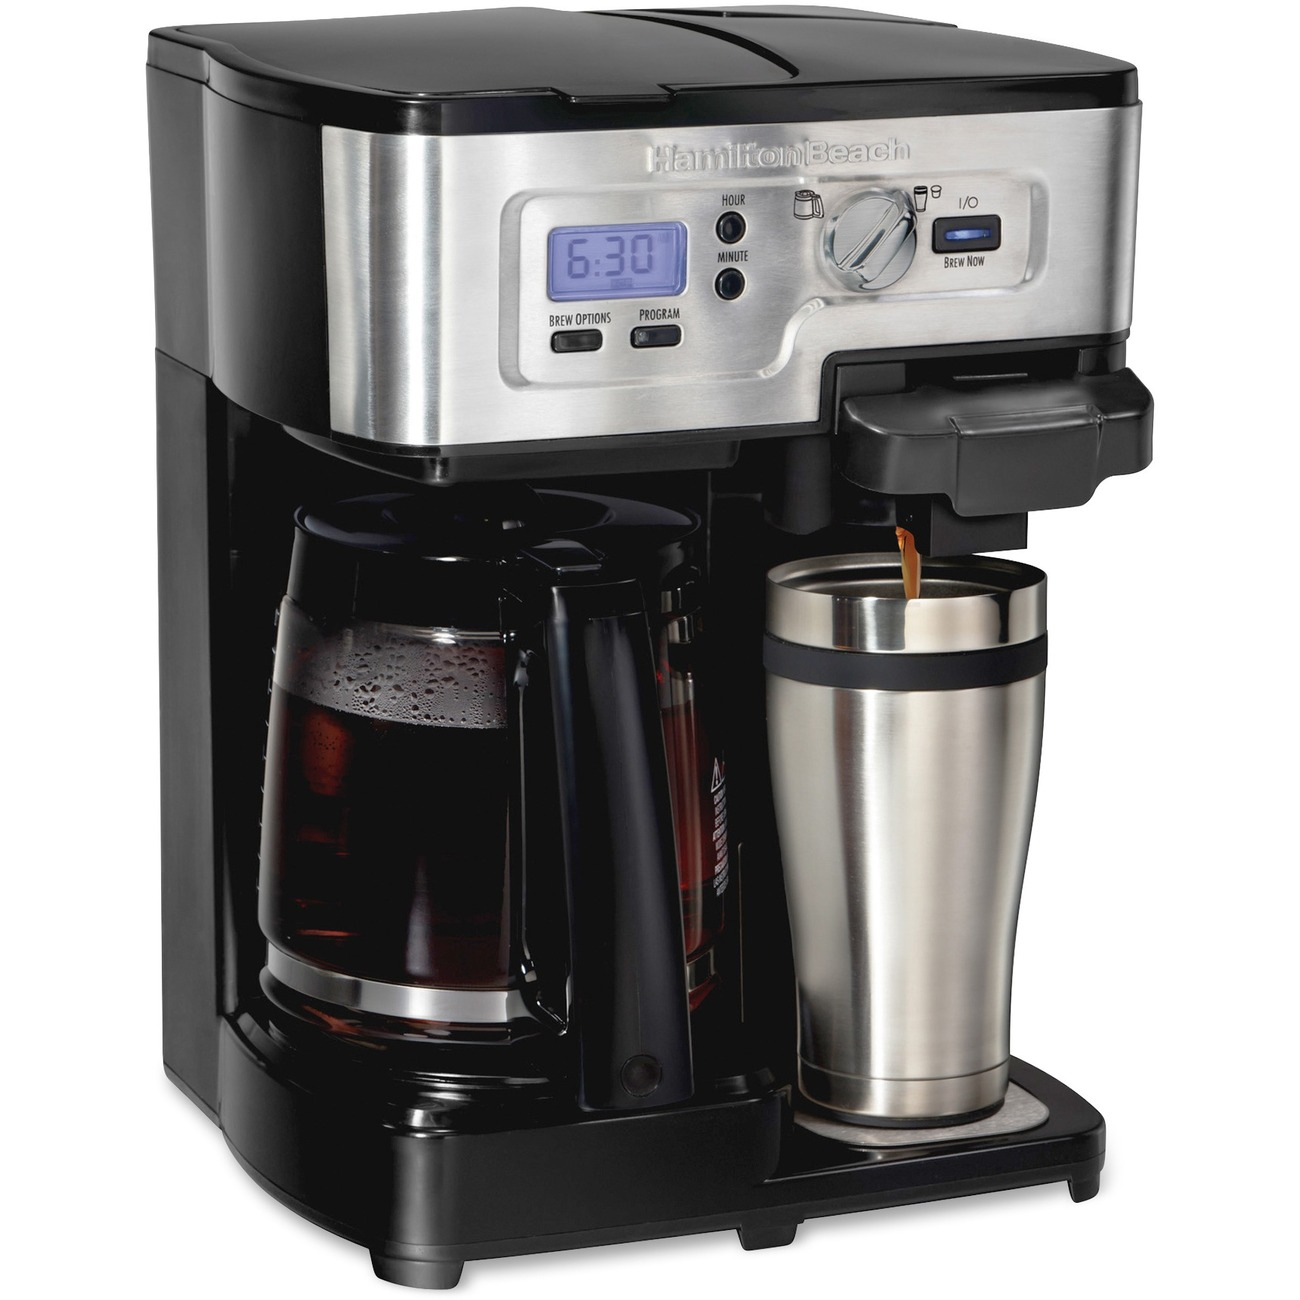 okanagan office systems cleaning breakroom breakroom rh store okanaganofficesystems com hamilton beach stay or go coffee maker user manual Hamilton Beach BrewStation Owner's Manual